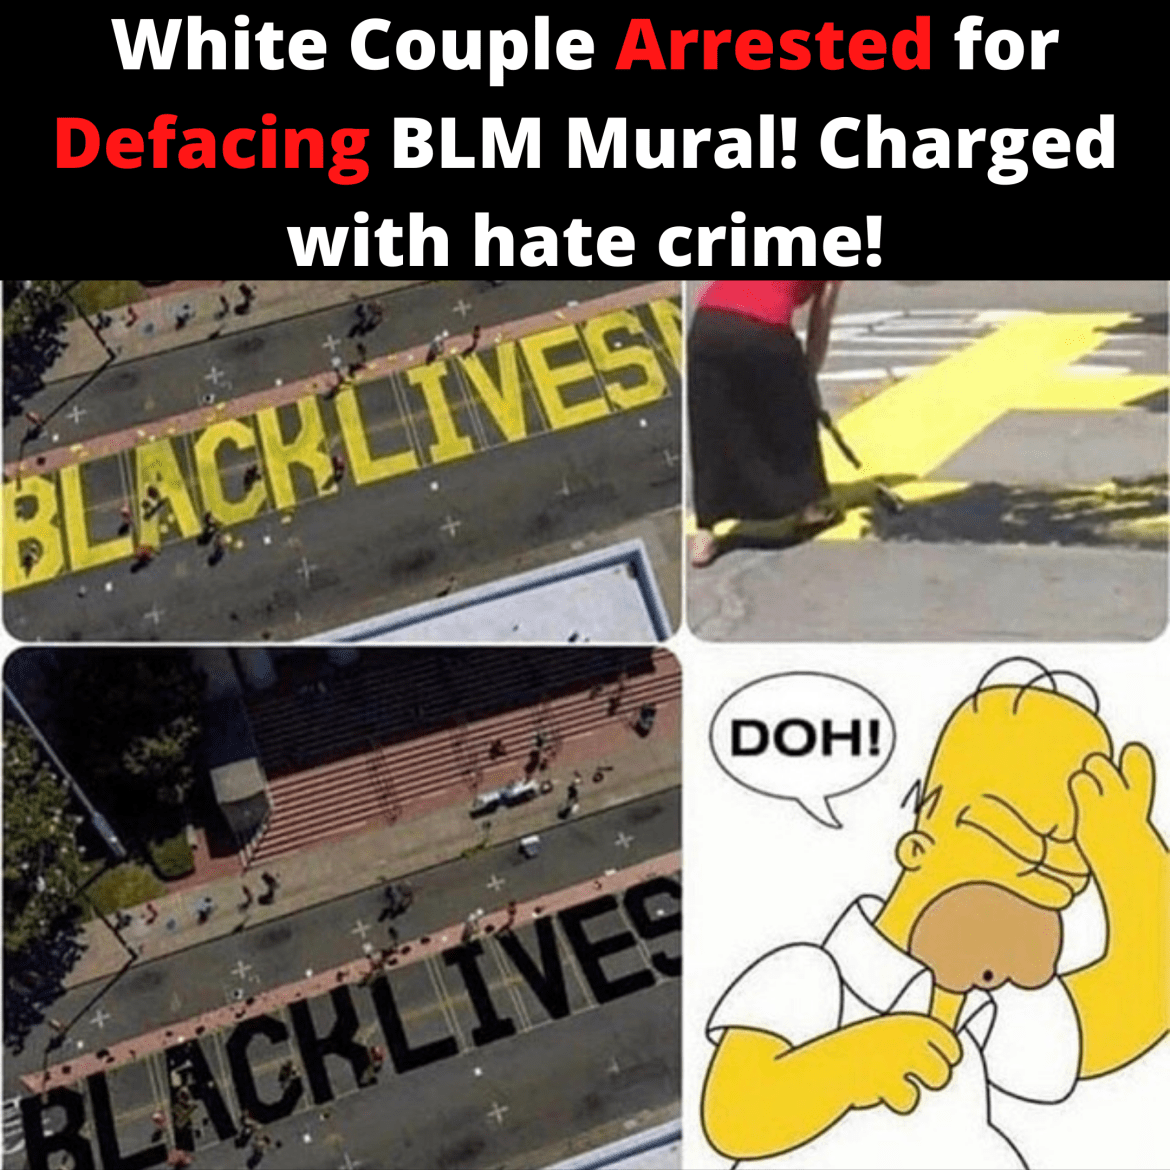 White Couple Arrested for Defacing BLM Mural